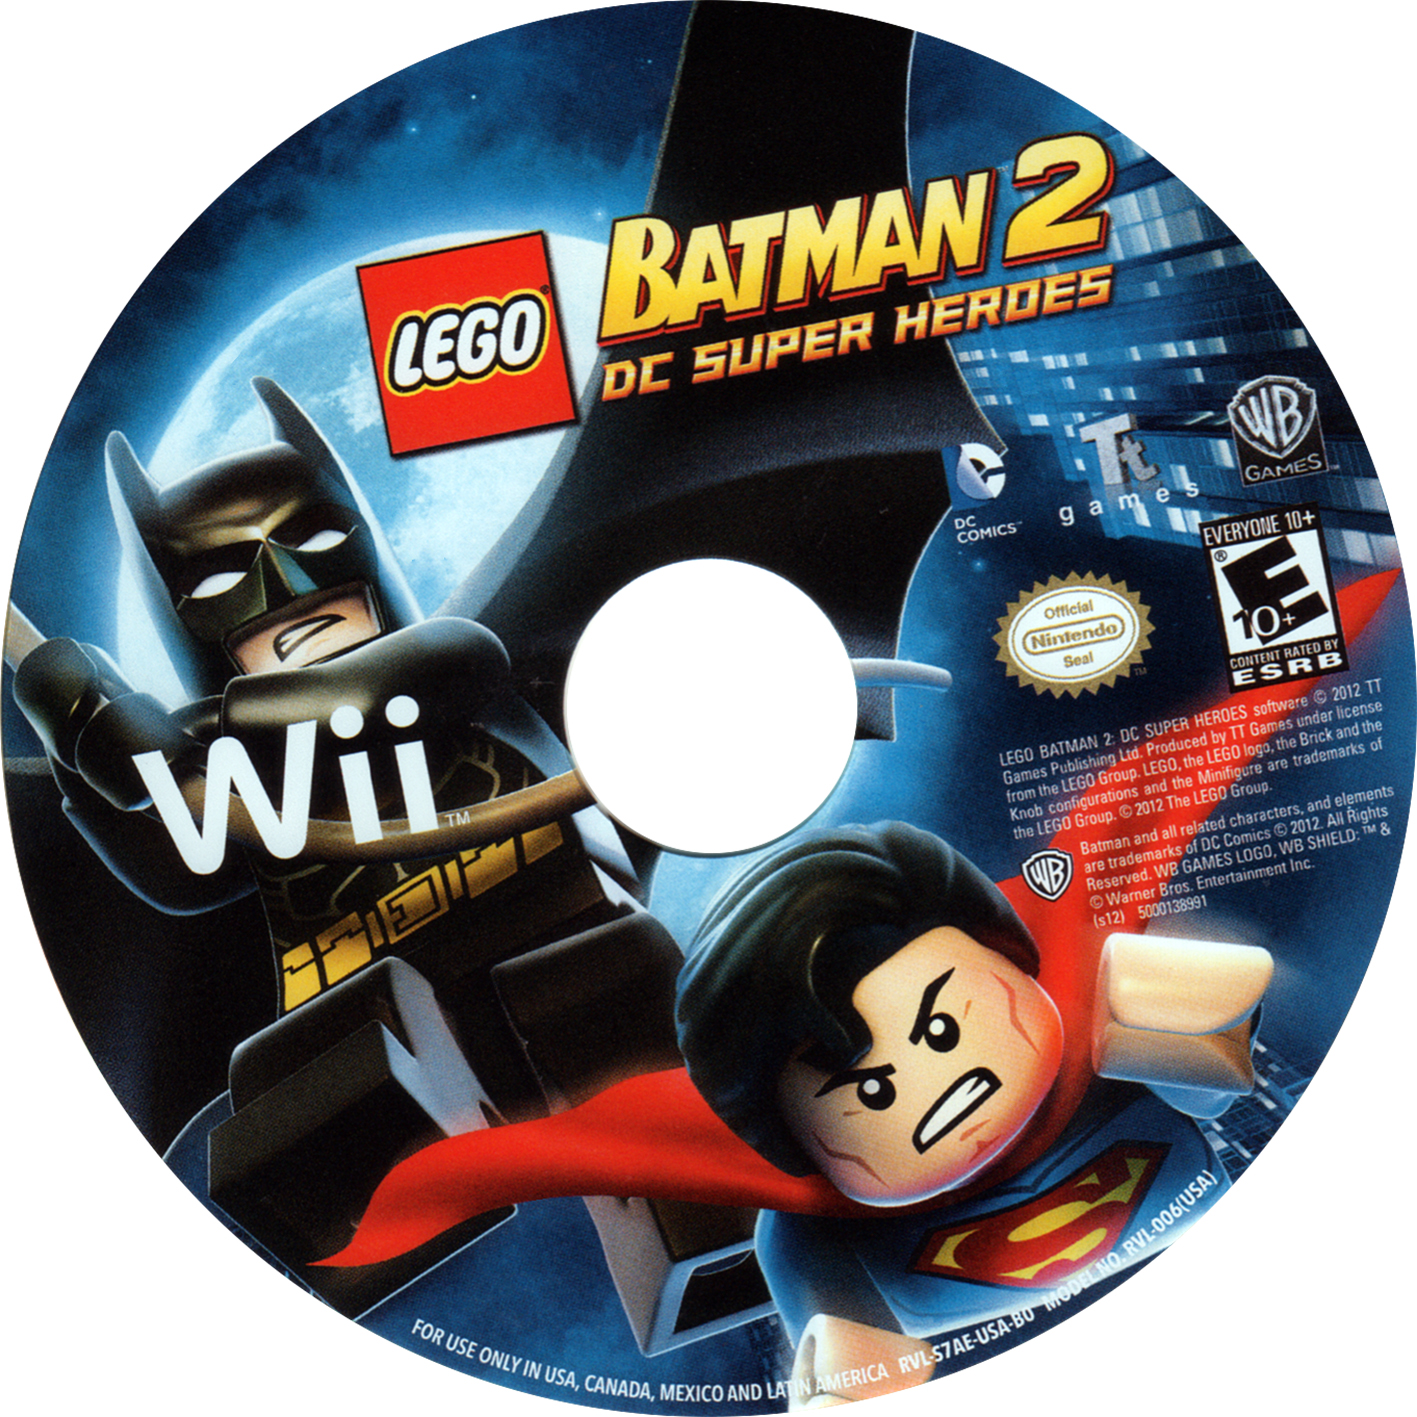 Label lego batman 2 dc super heroes wii